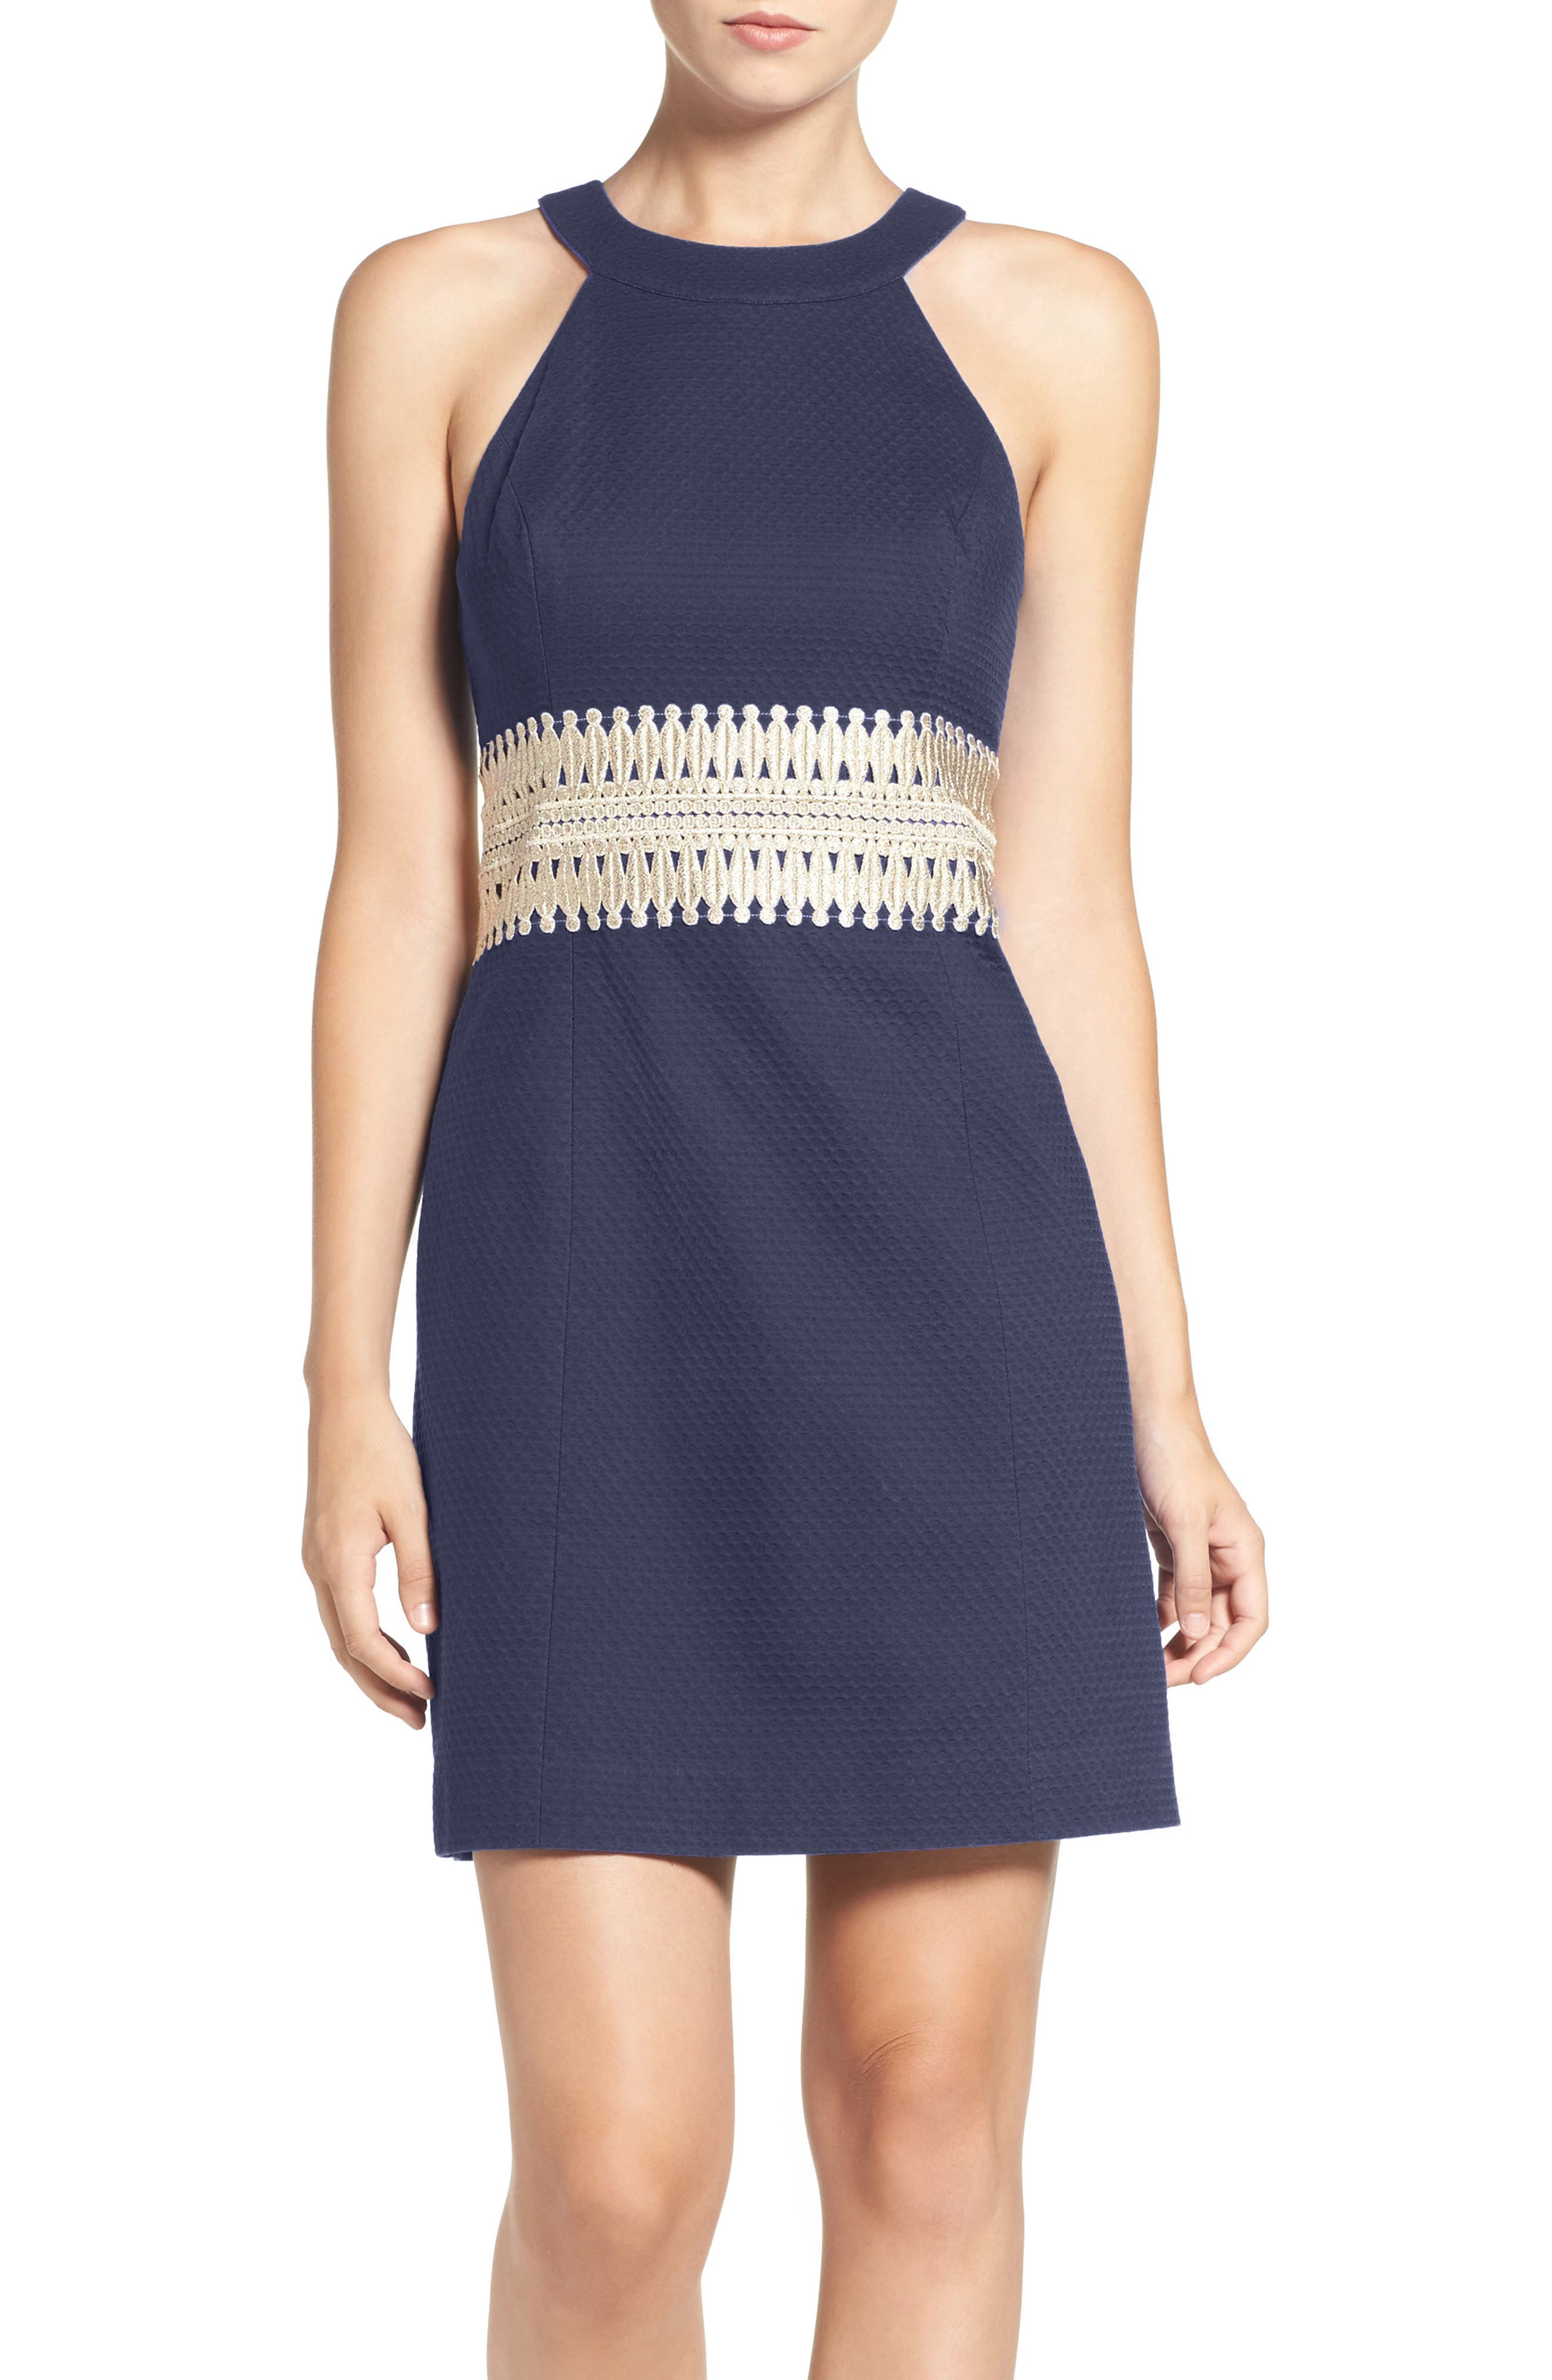 Alternate Image 1 Selected - Lilly Pulitzer® 'Ashlyn' Lace Waist Cotton Sheath Dress